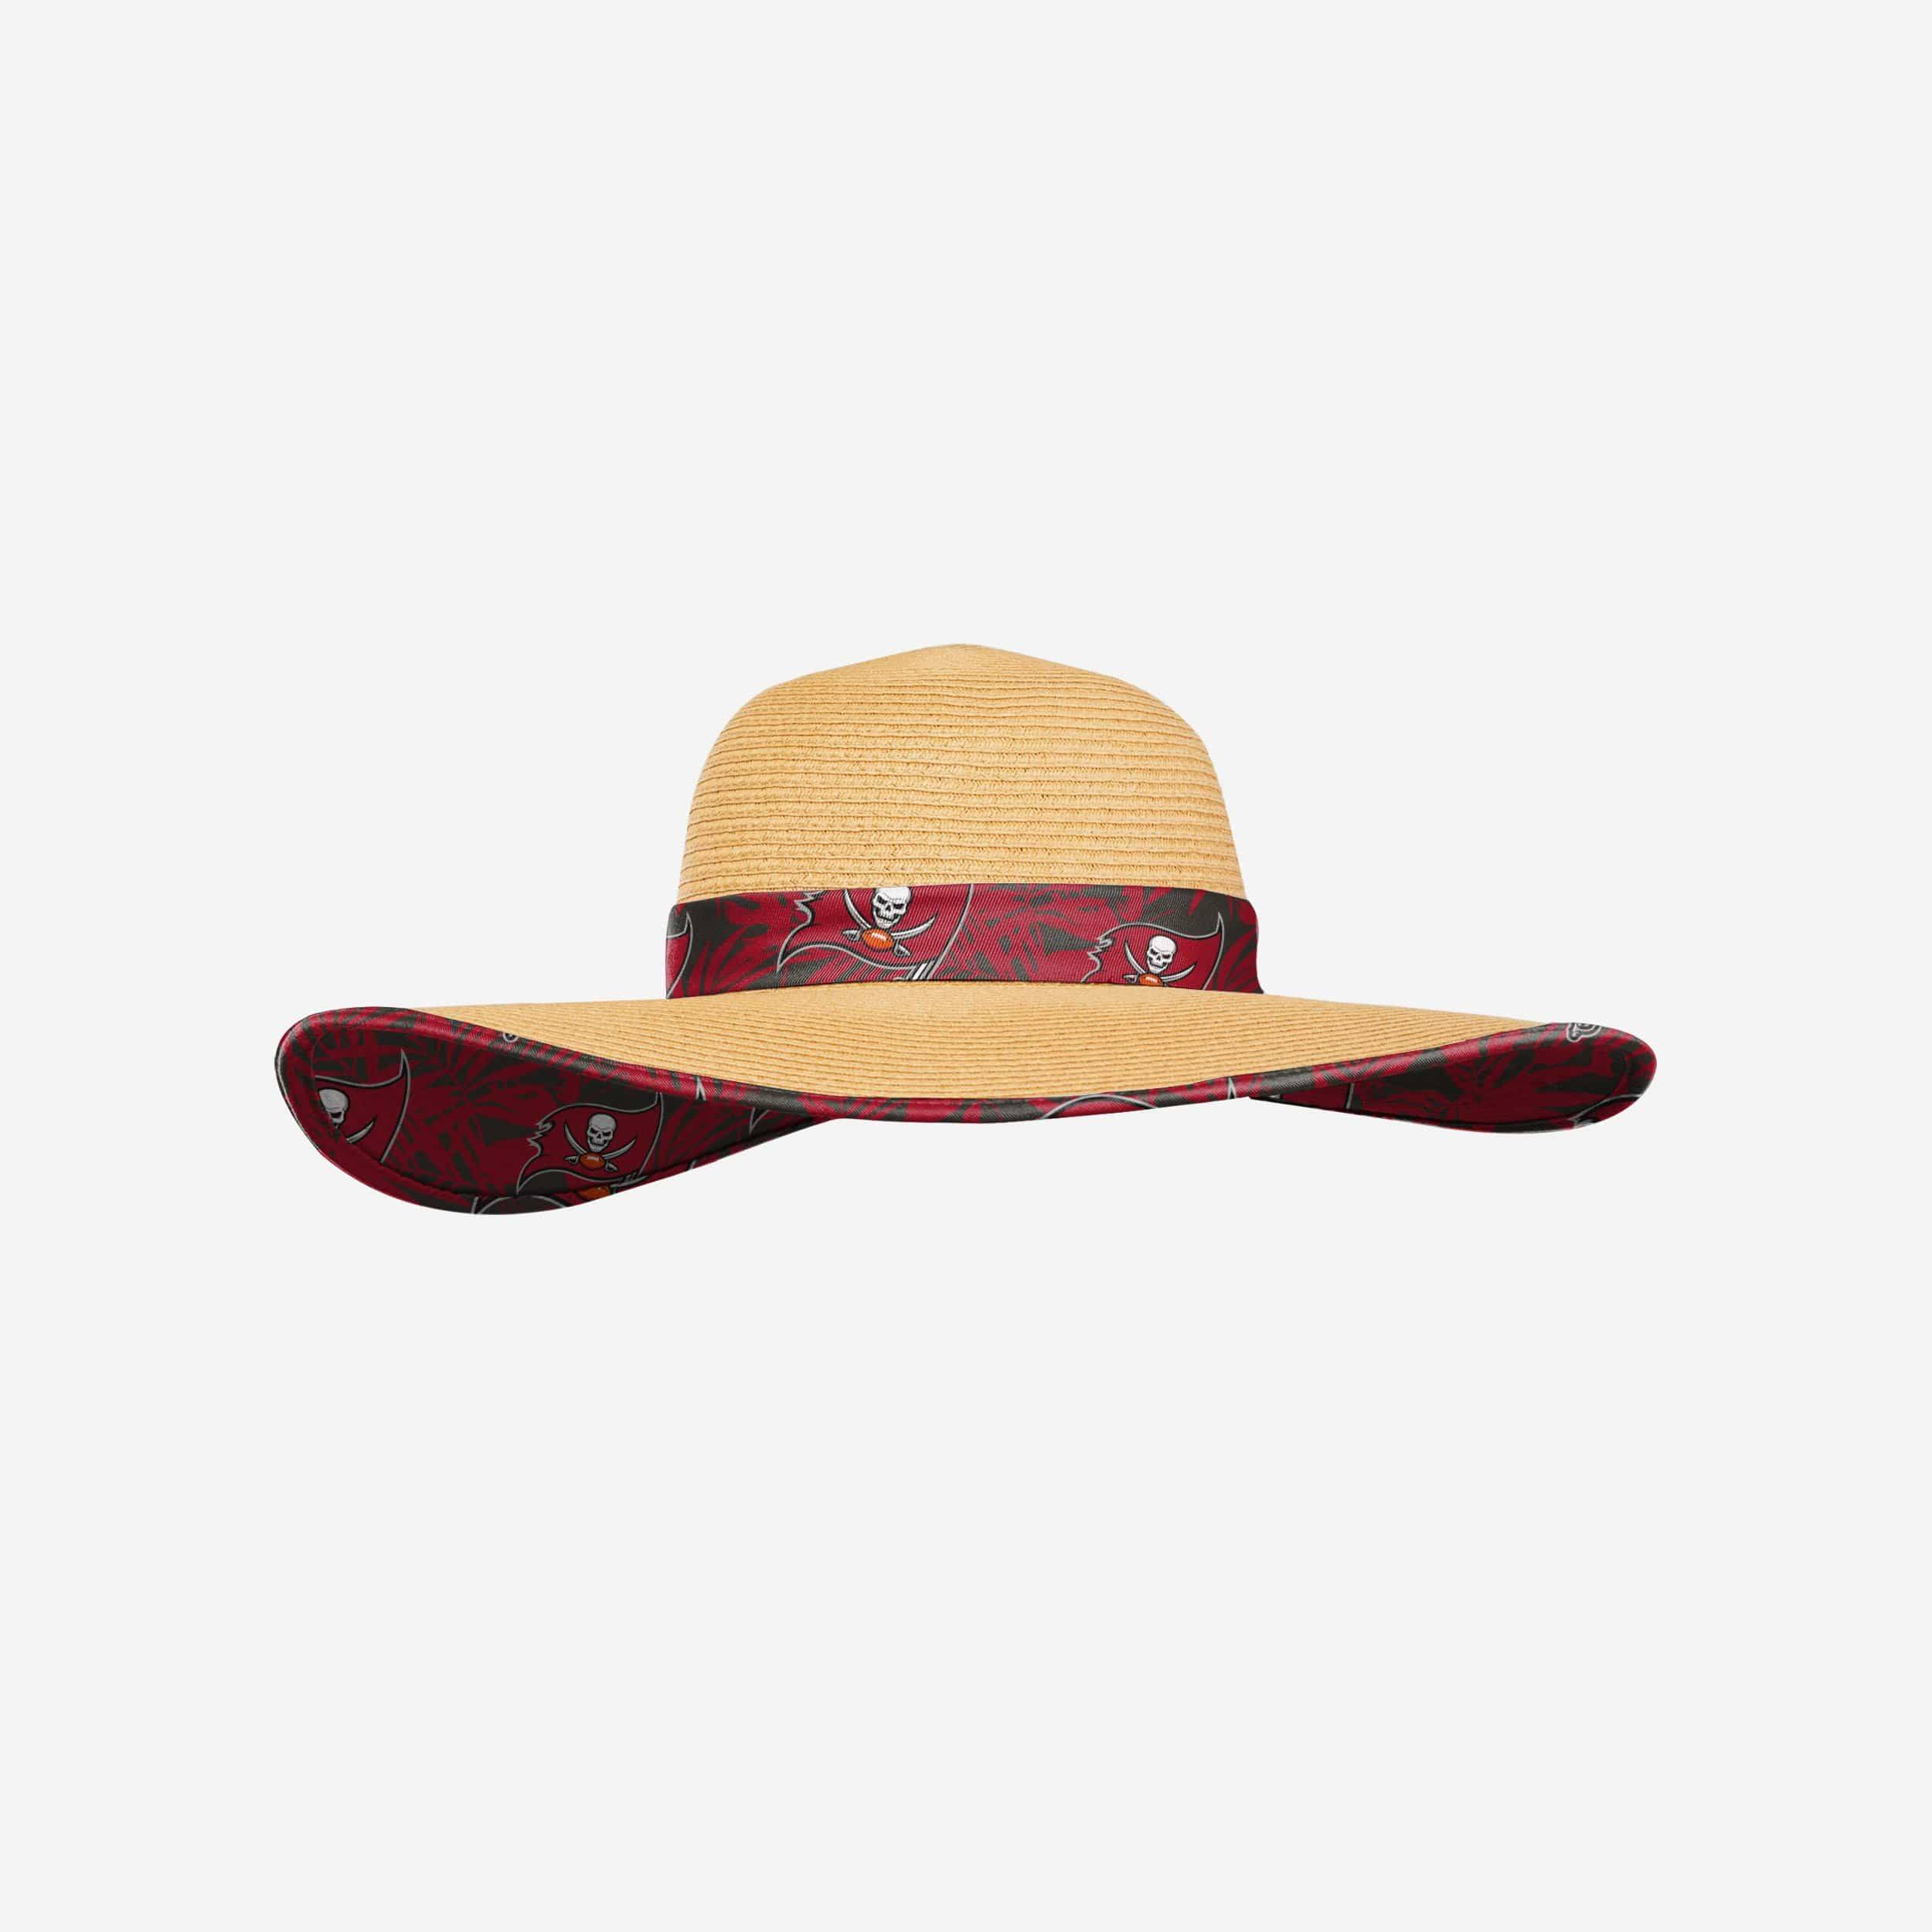 FOCO Tampa Bay Buccaneers Womens Floral Straw Hat